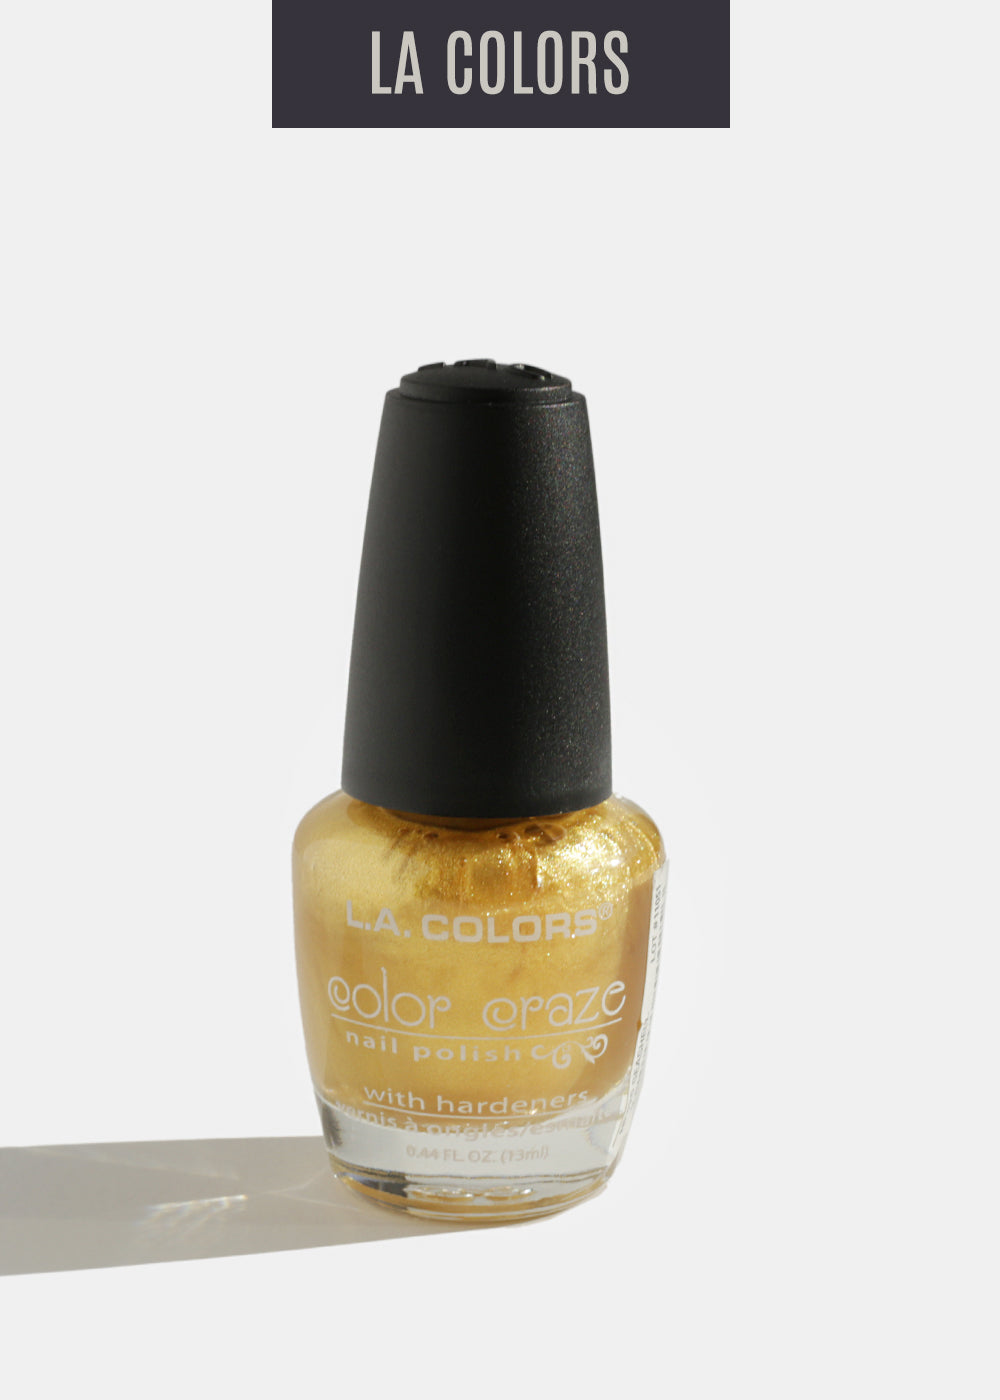 L.A. Colors - Color Craze Nail Polish - Seashell